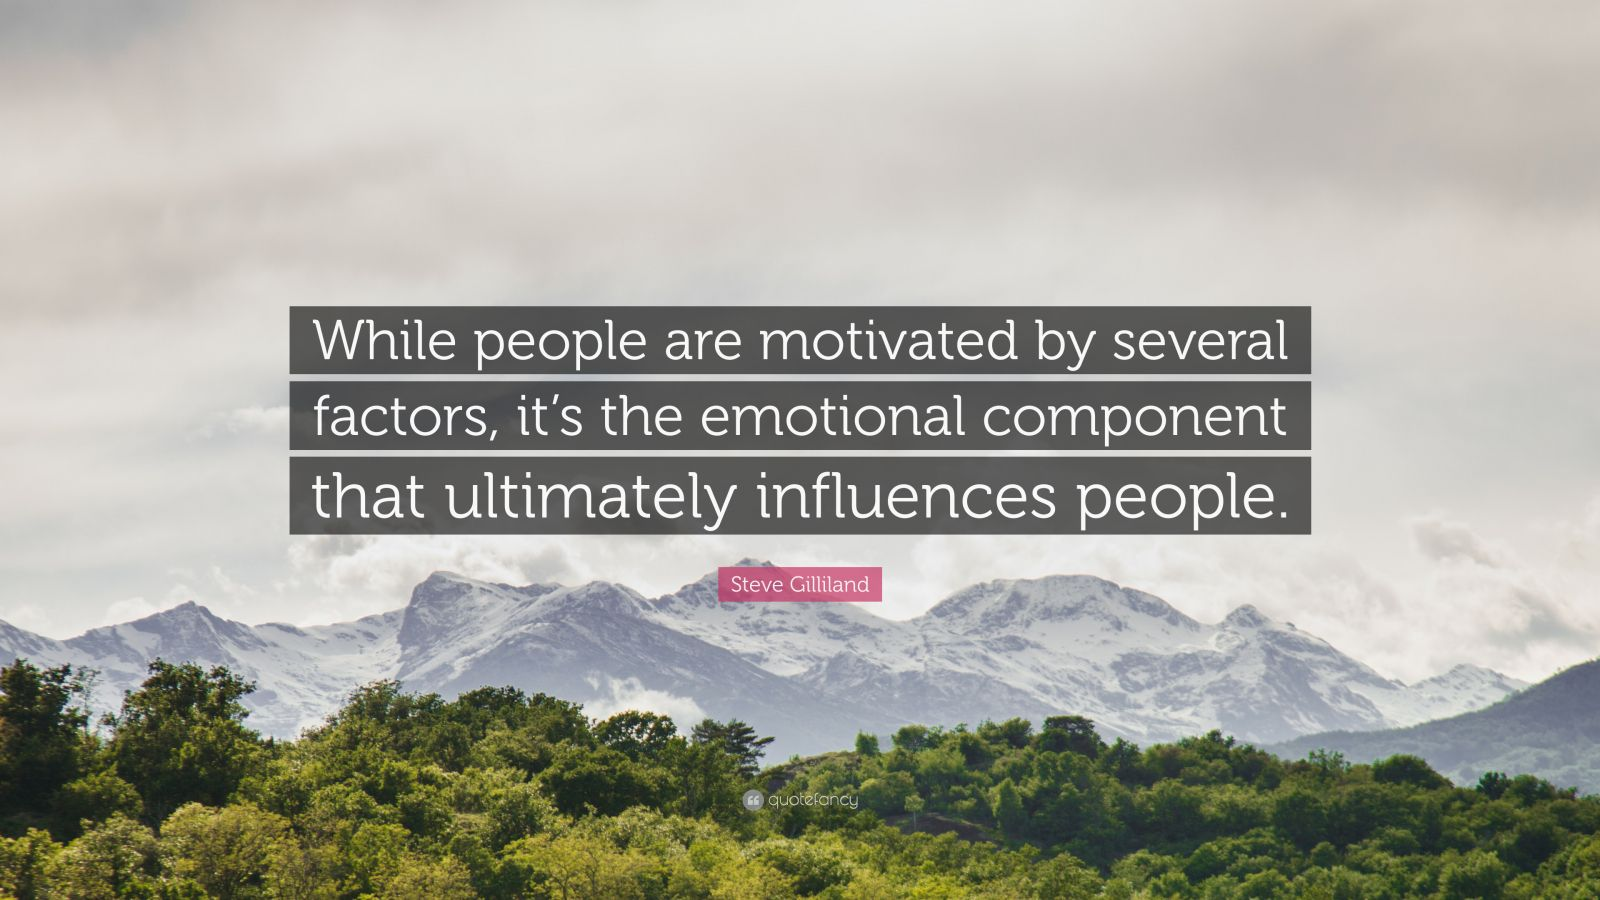 """Steve Gilliland Quote: """"While people are motivated by several factors, it's the emotional component that ultimately influences people."""""""